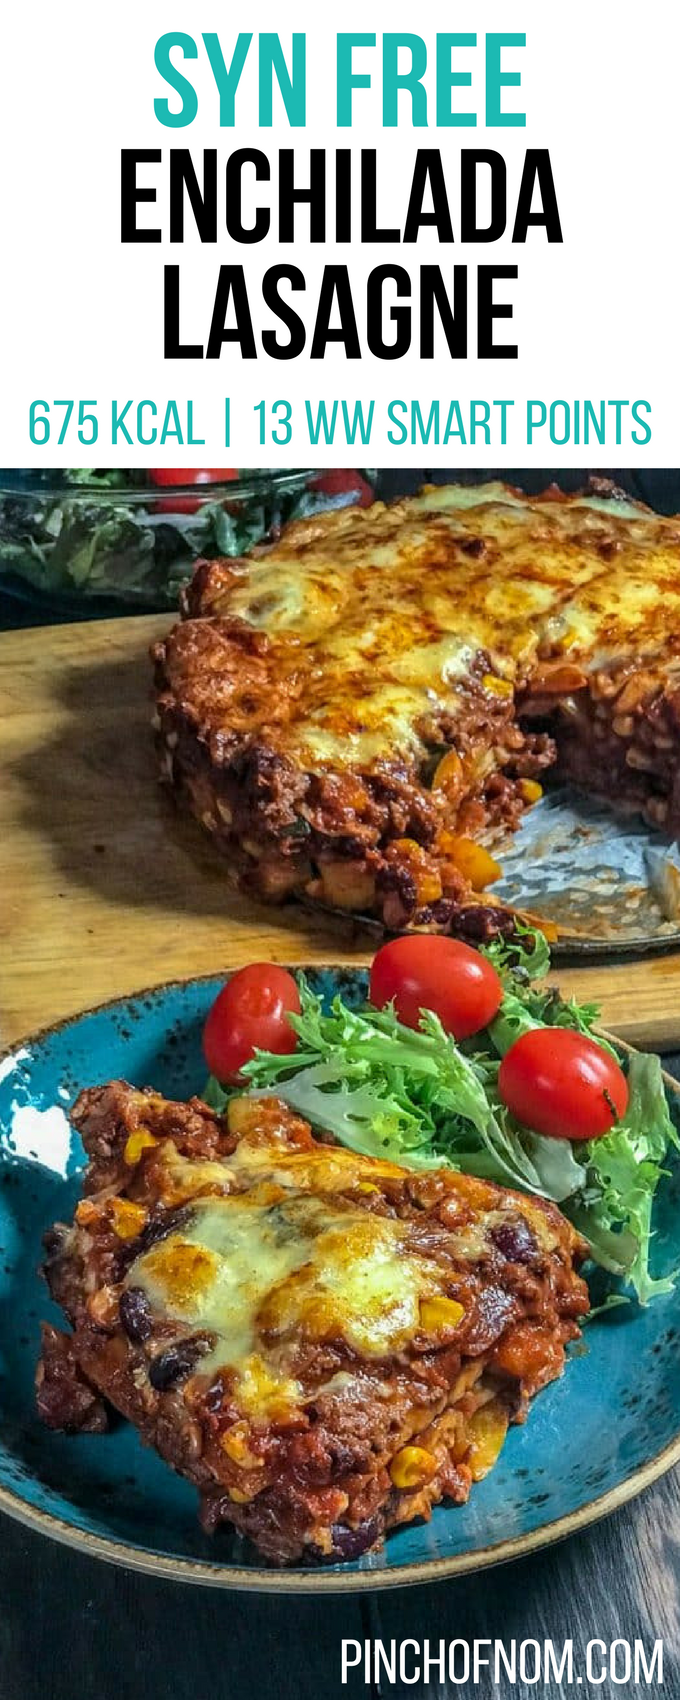 Enchilada Lasagne - Pinch Of Nom